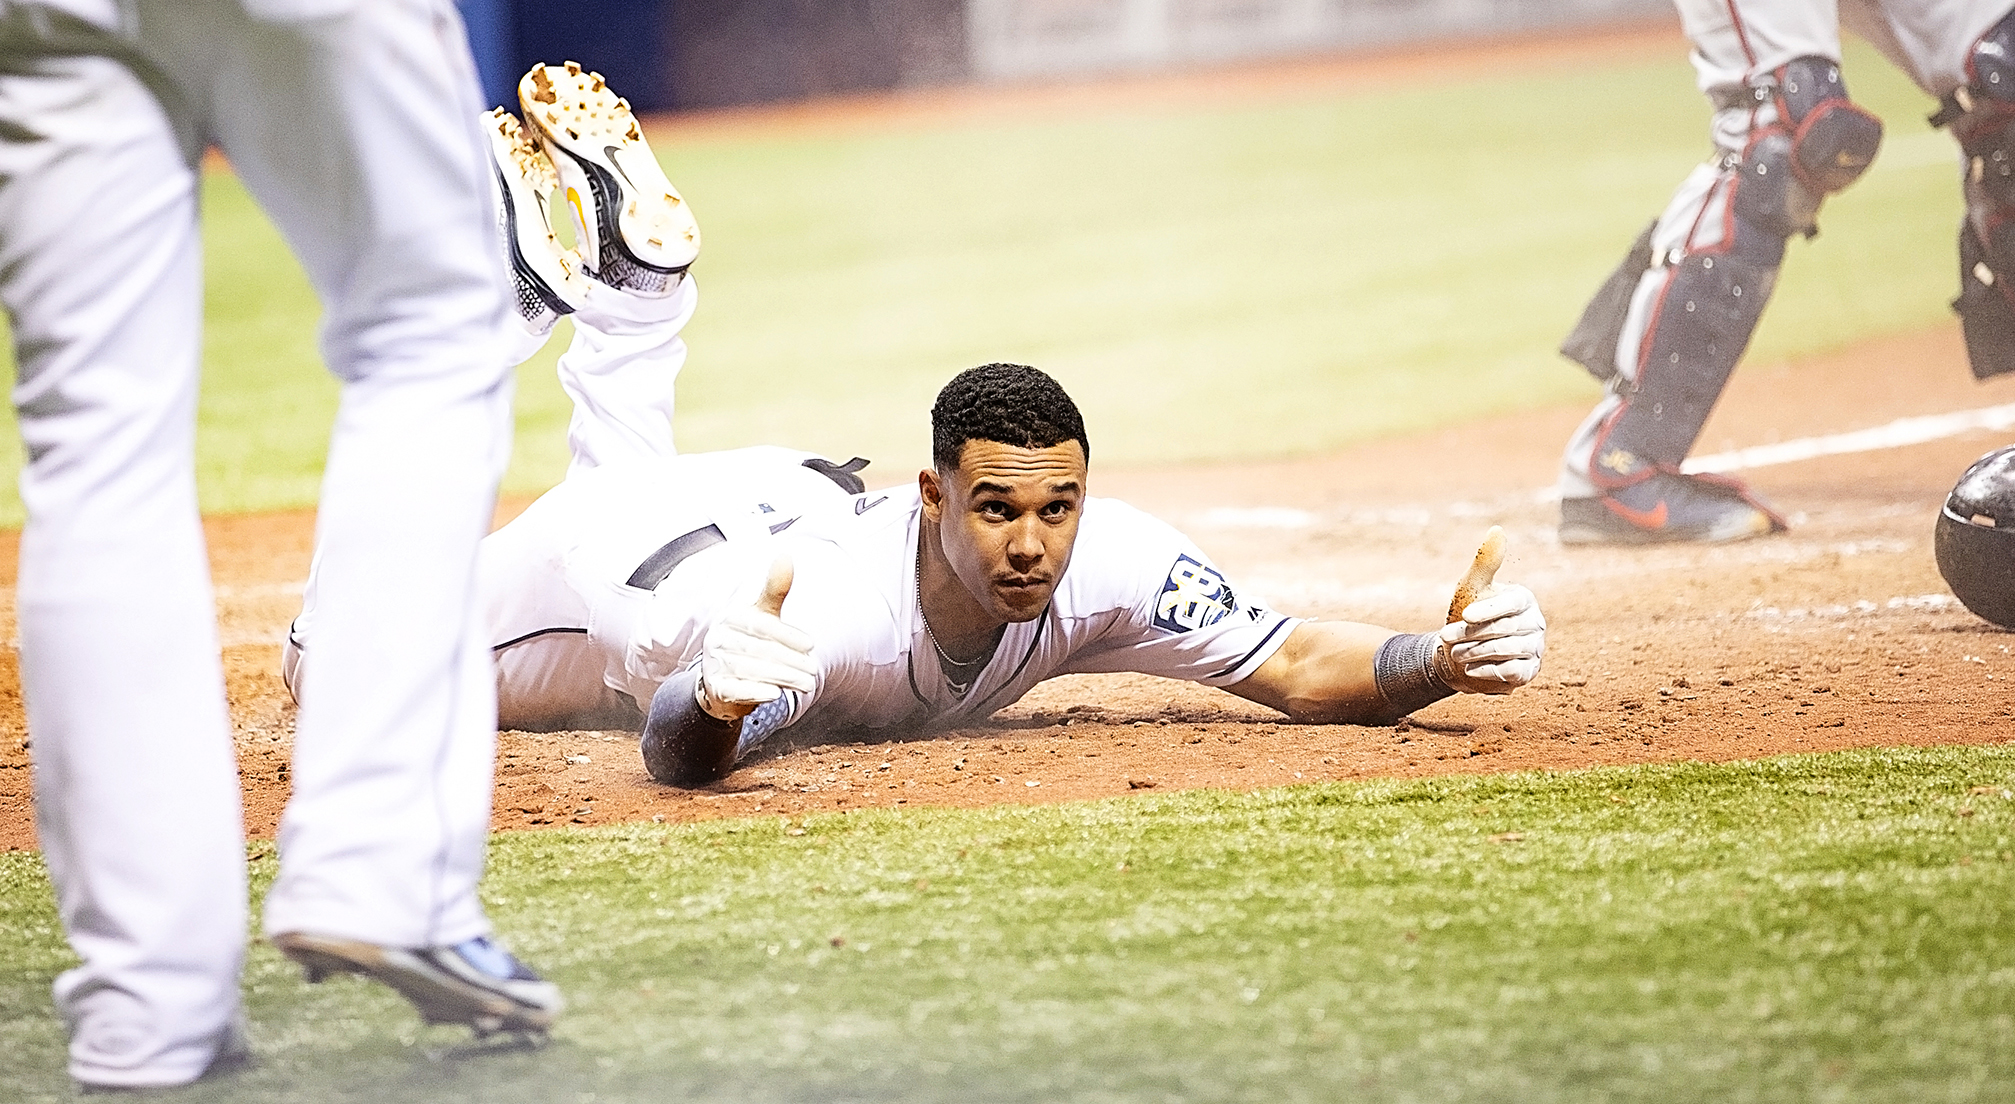 Carlos Gomez gives two thumb's up after scoring in the ninth./CARMEN MANDATO